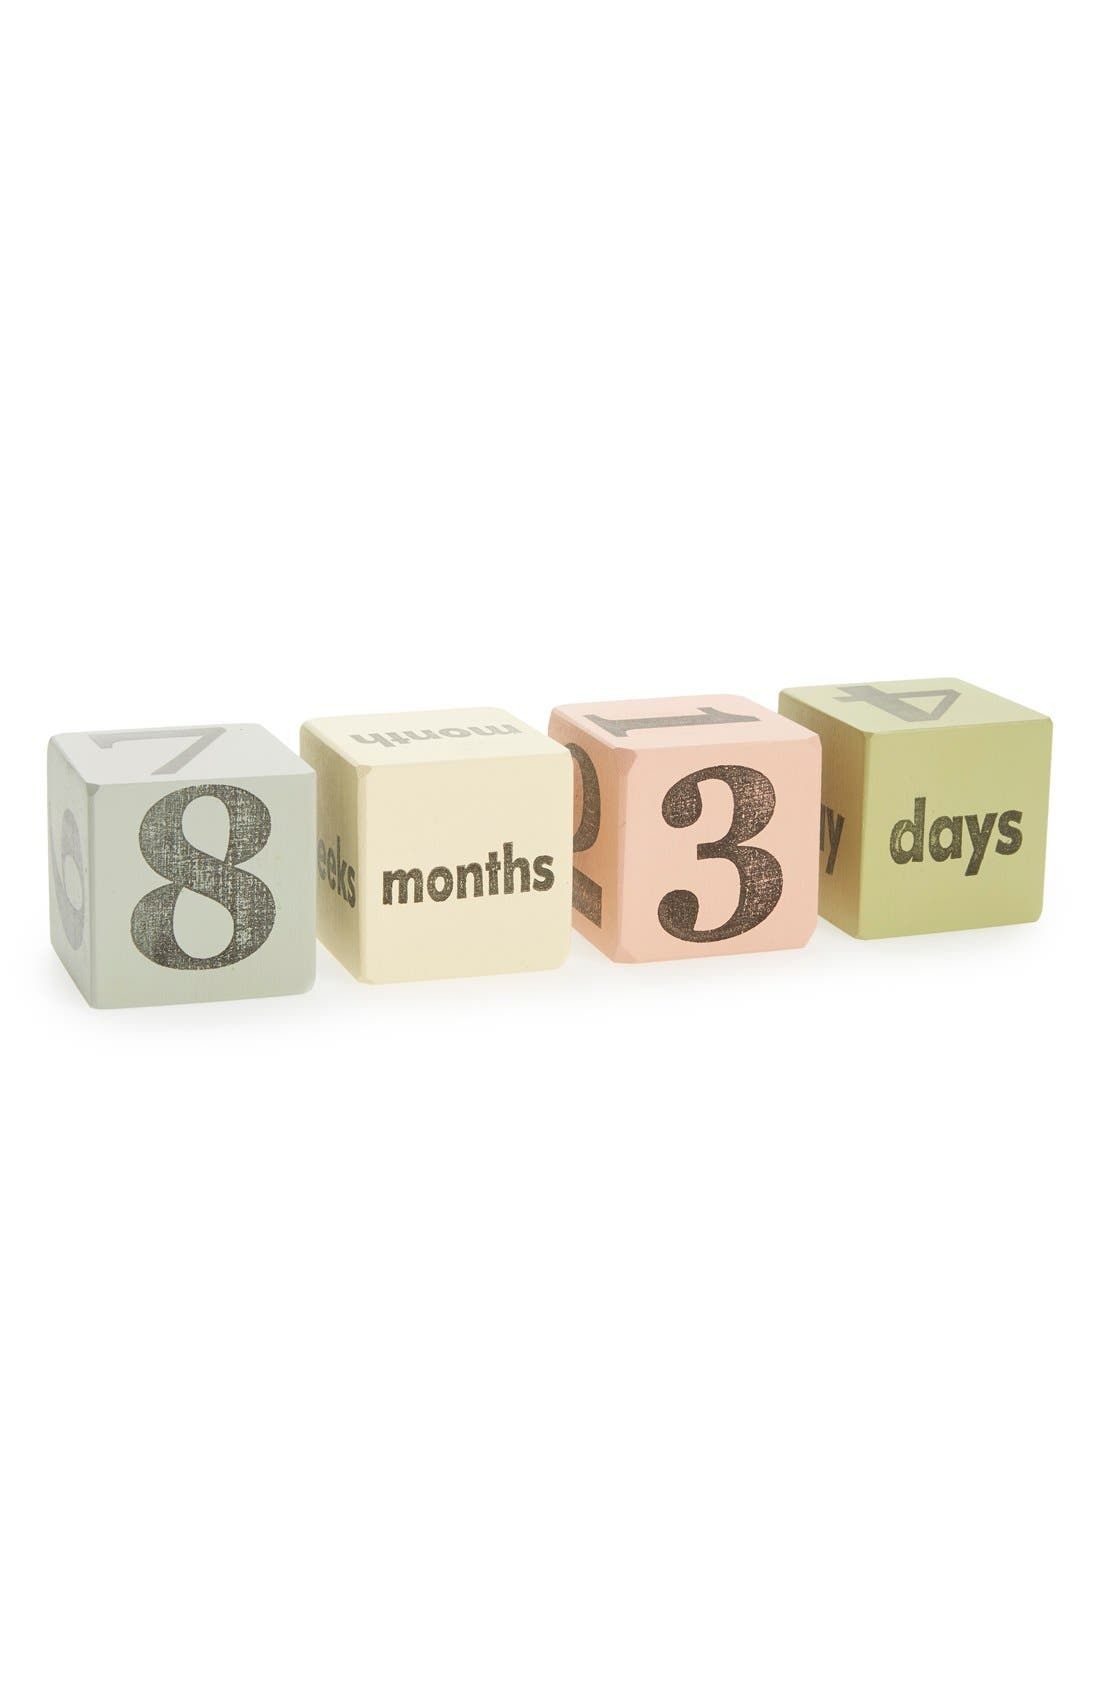 Tree by Kerri Lee Wooden Keepsake Blocks (Set of 4) (Nordstrom Exclusive)